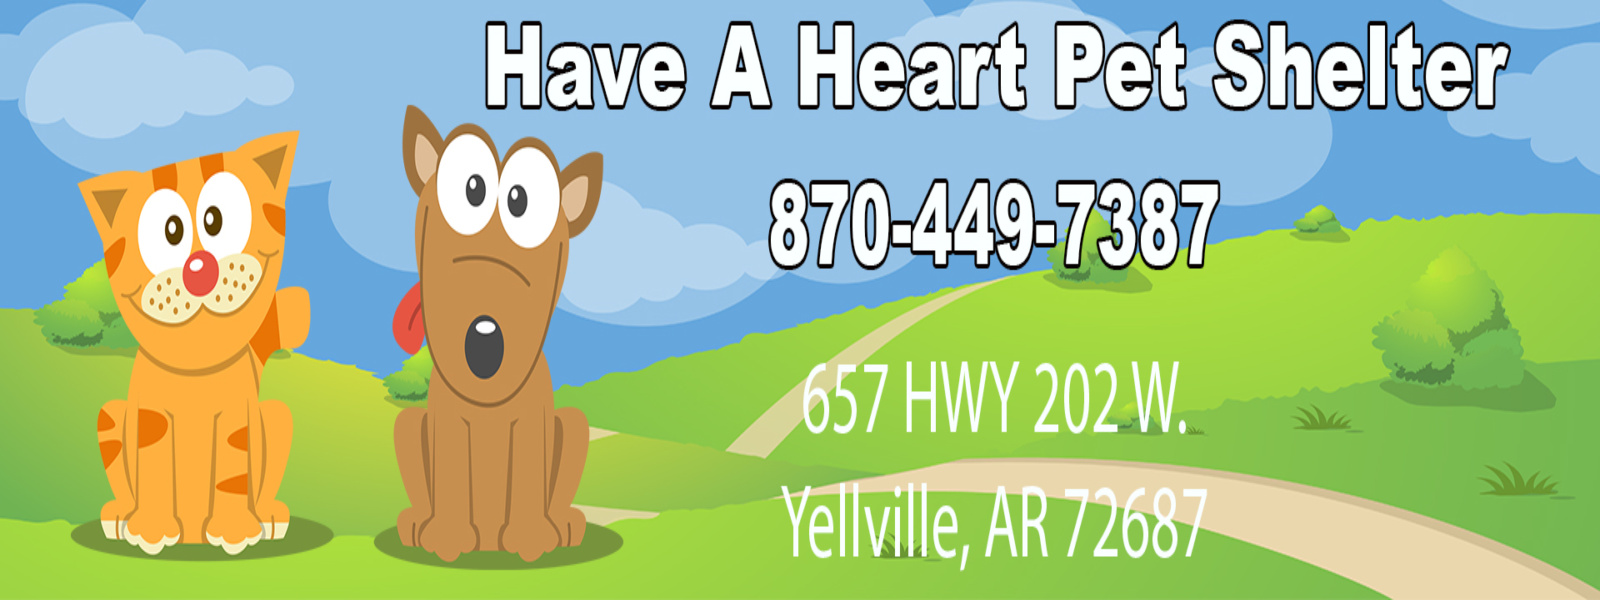 Have A Heart Pet Shelter